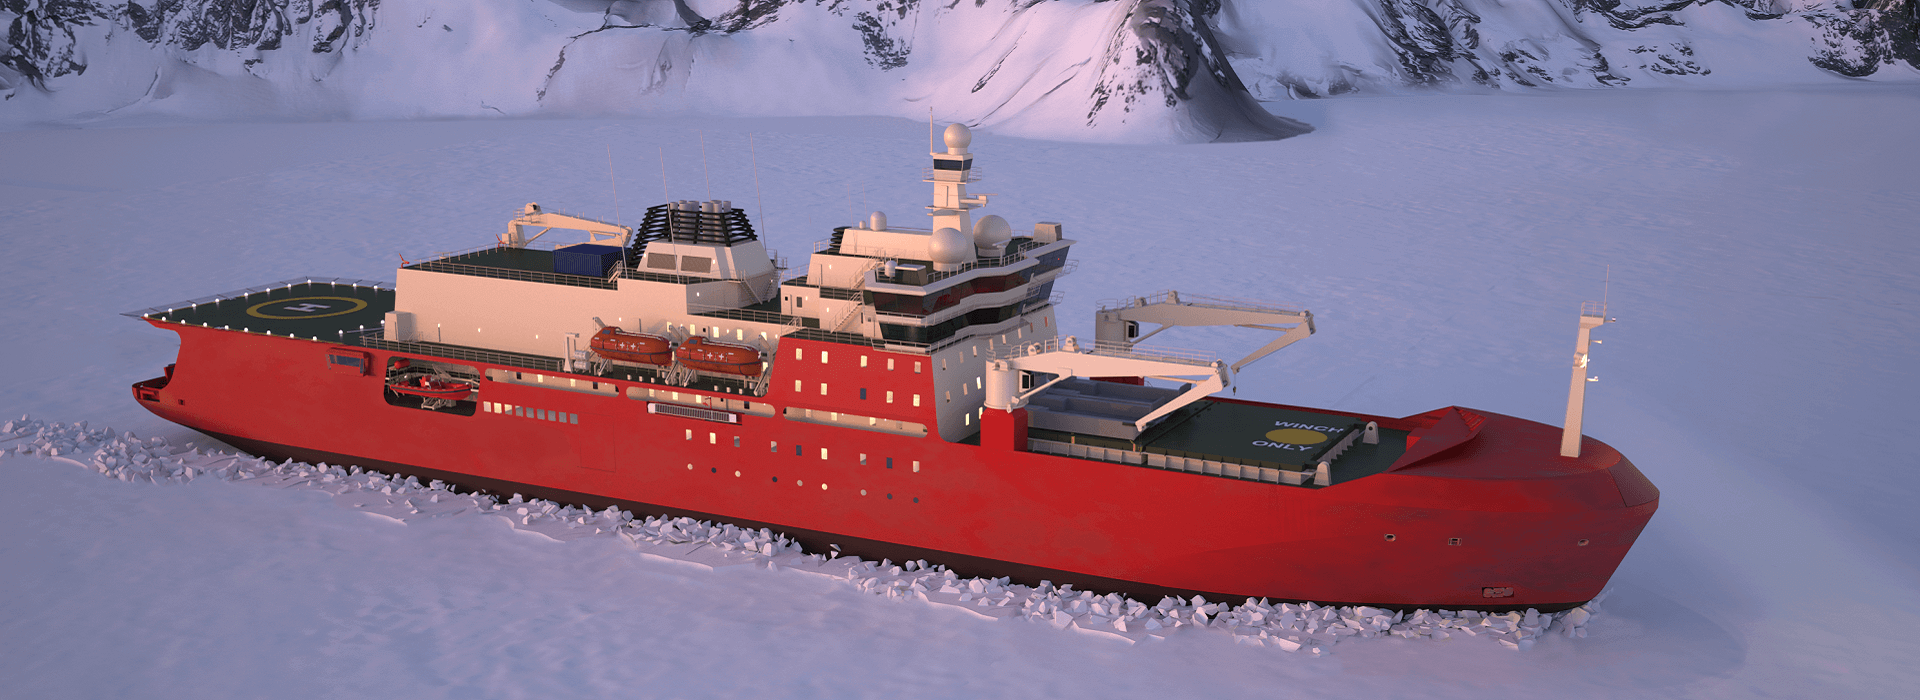 damen-antarctic-supply-research-vessel-desktop_1490767456